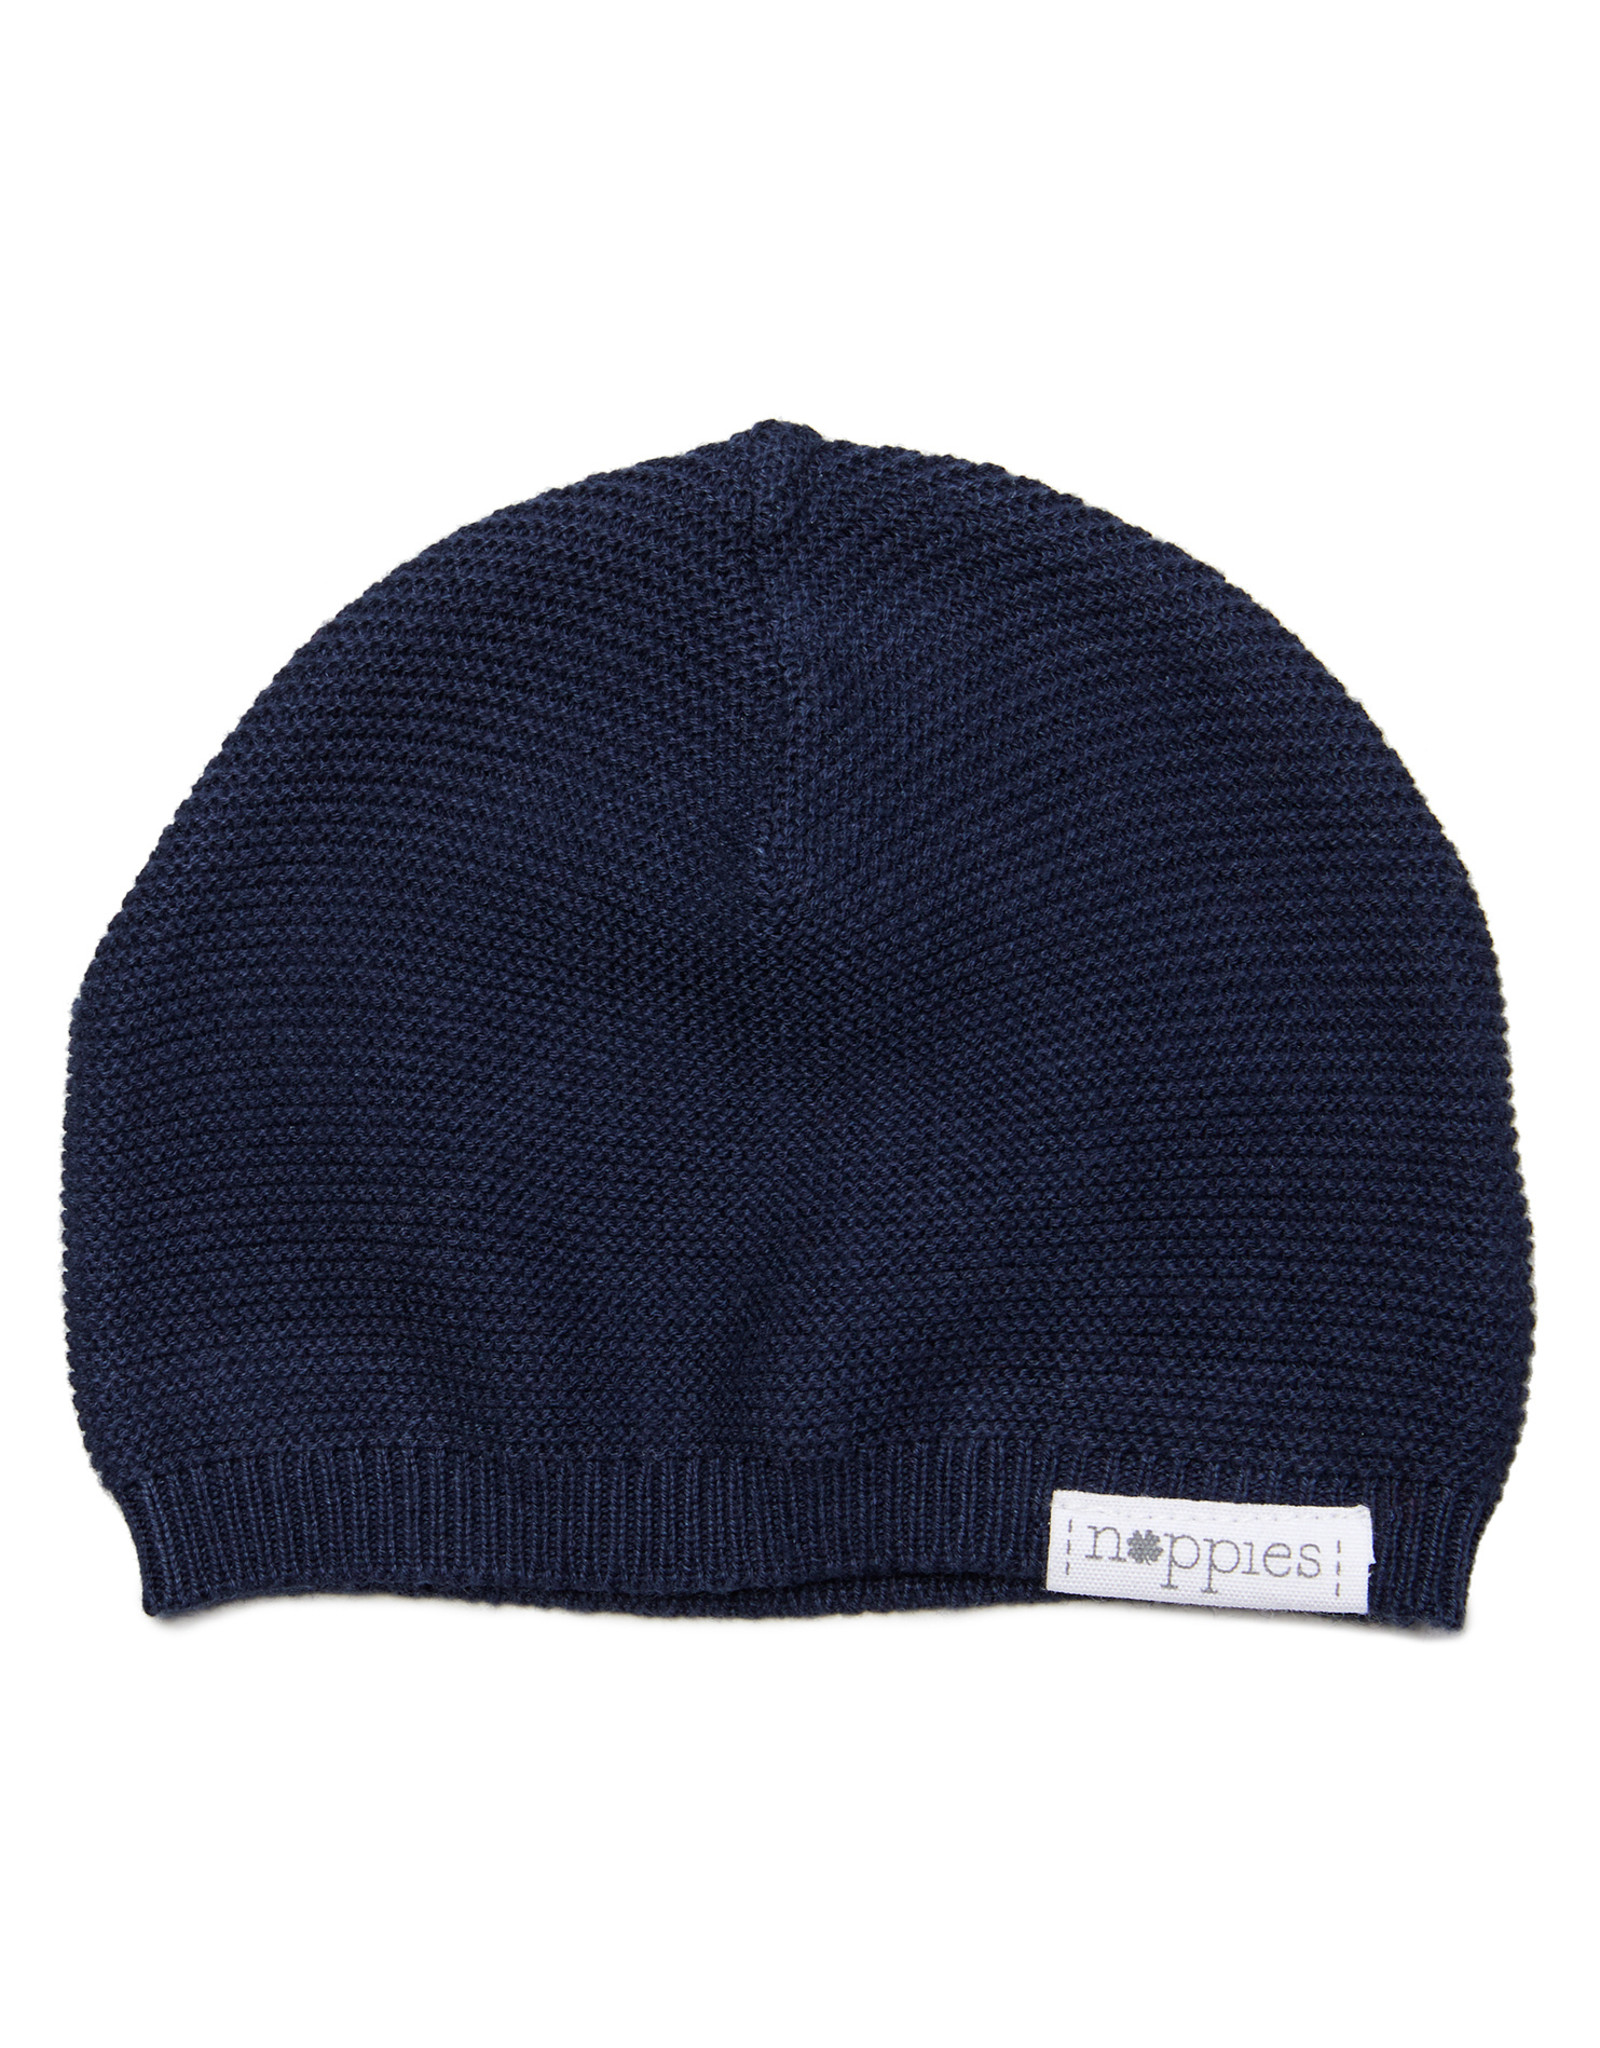 Noppies U Hat Knit Zola navy